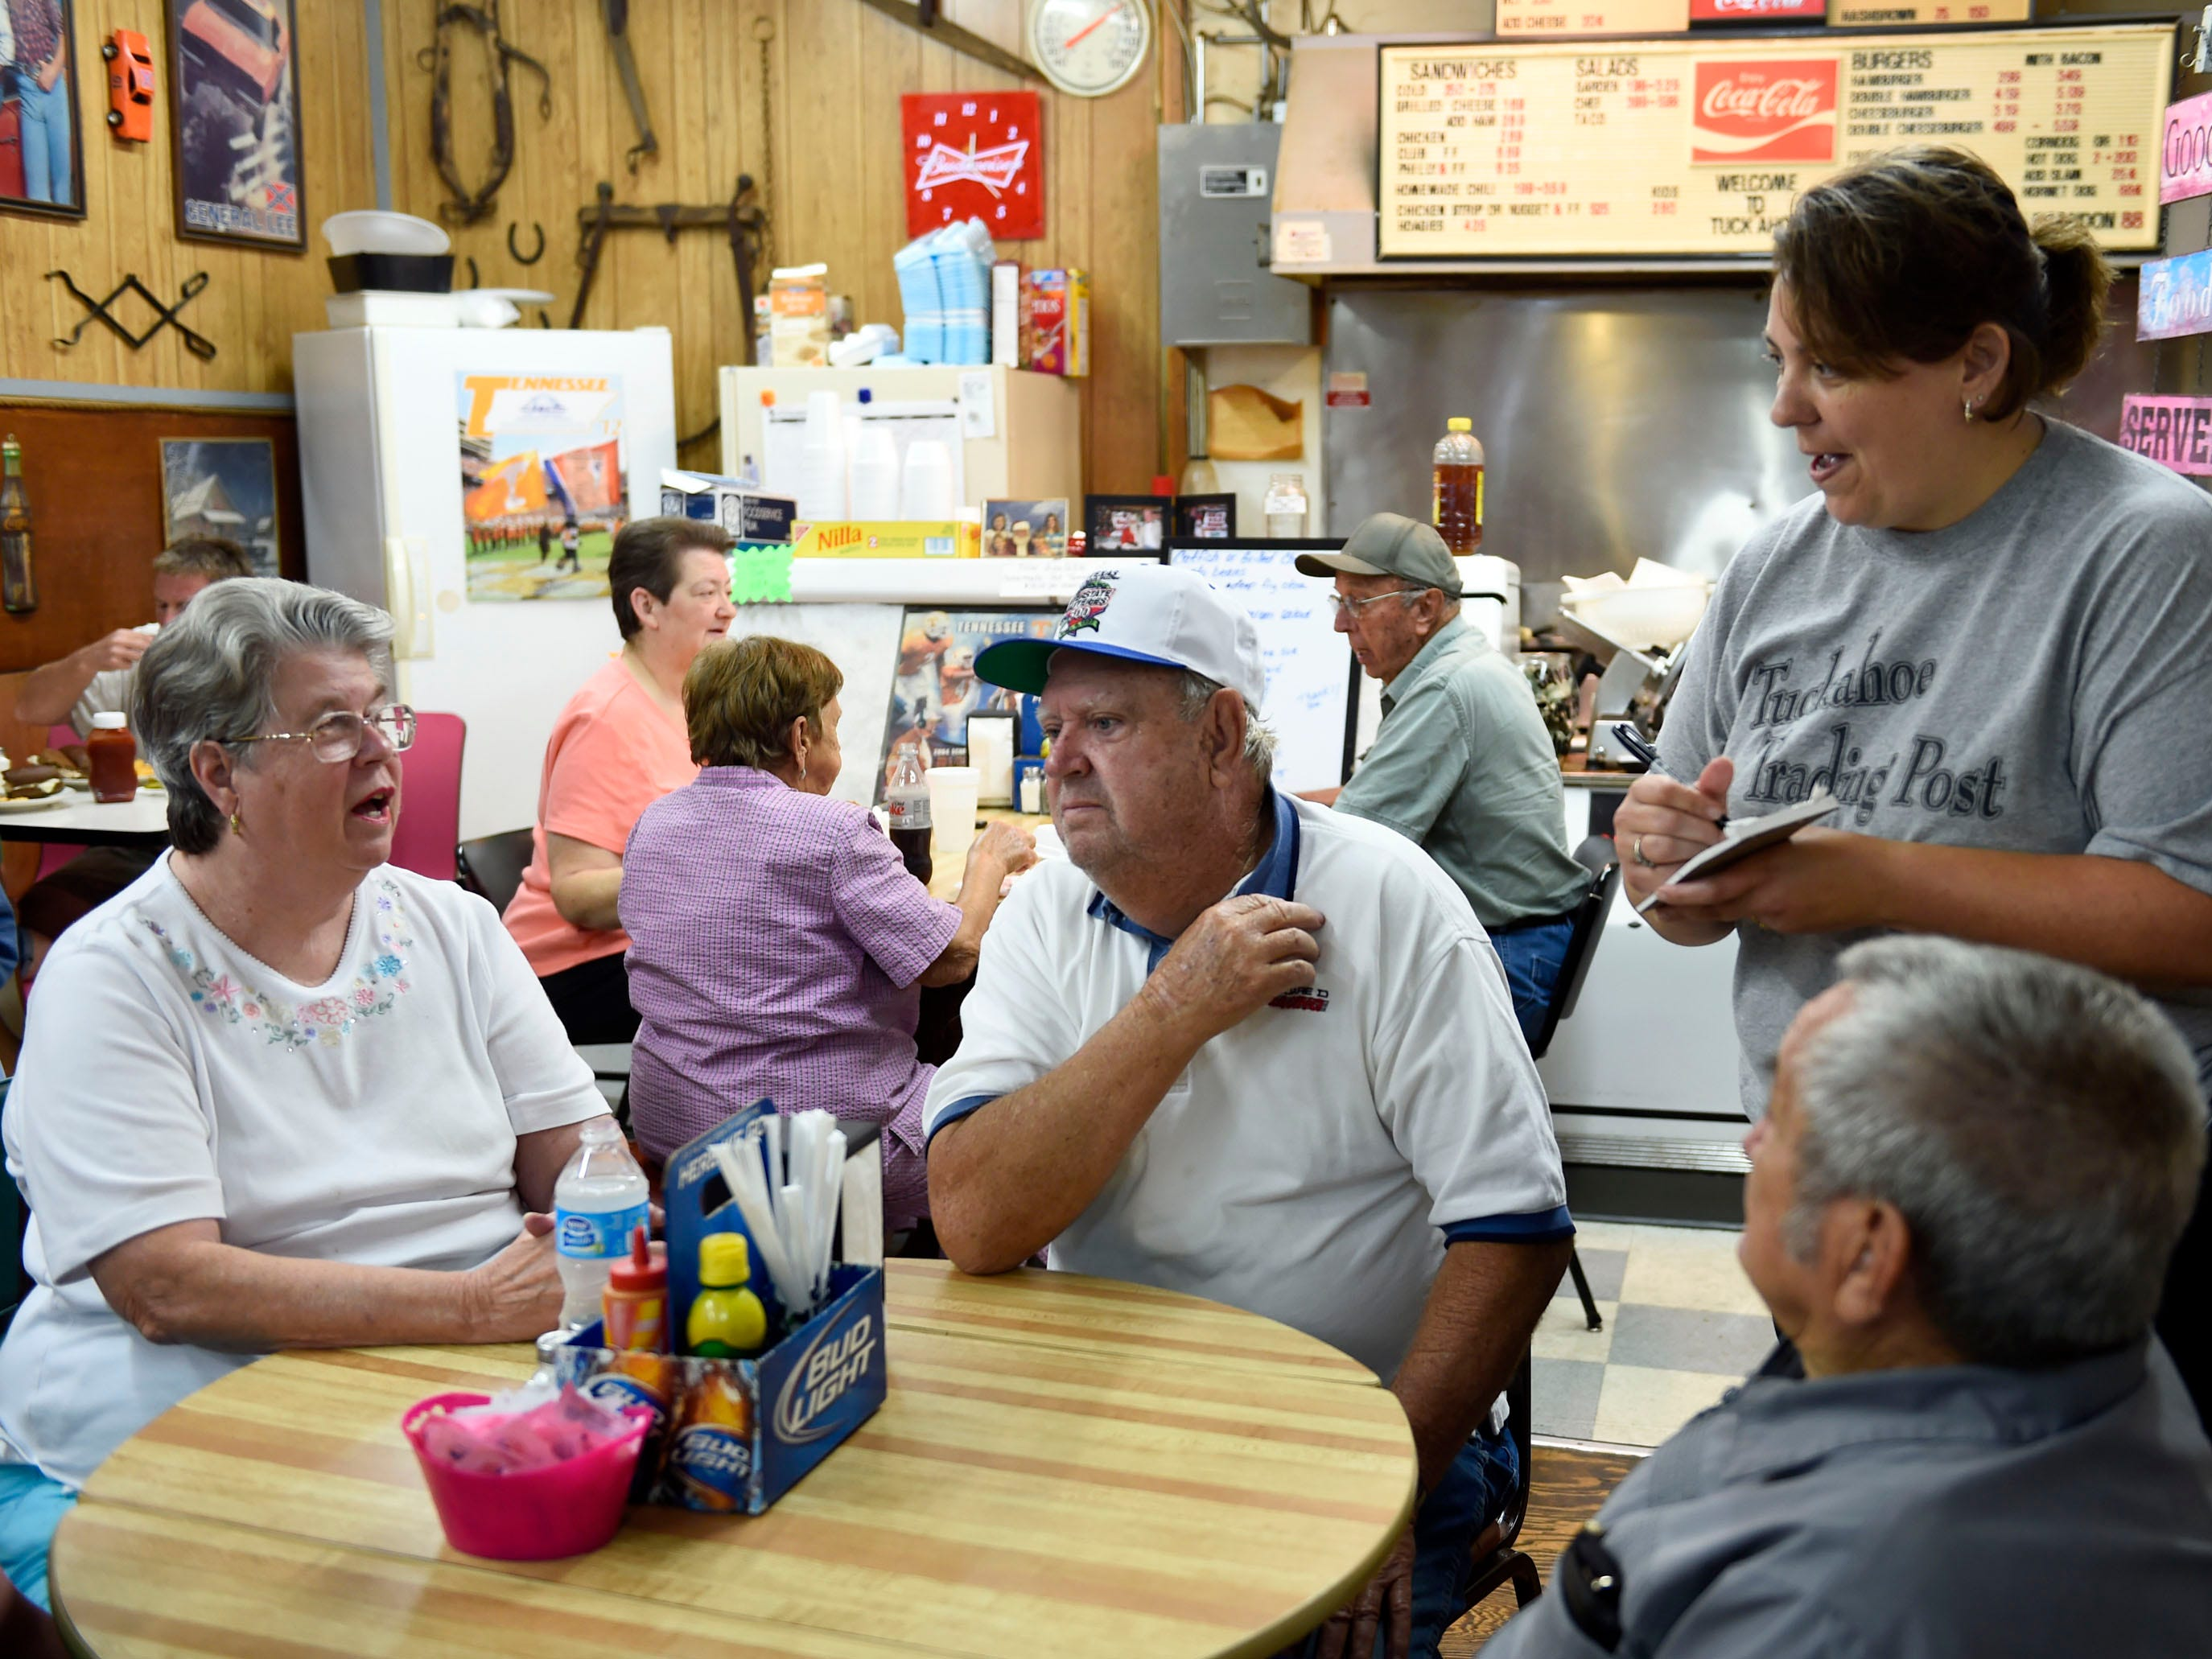 Co-owner Kim Maples-Worley, right, takes a lunch order for customers Pat and Gerald Snyder and Charles Farmer at the Tuckahoe Trading Post on Kodak Rd., Friday, Aug. 8, 2014.